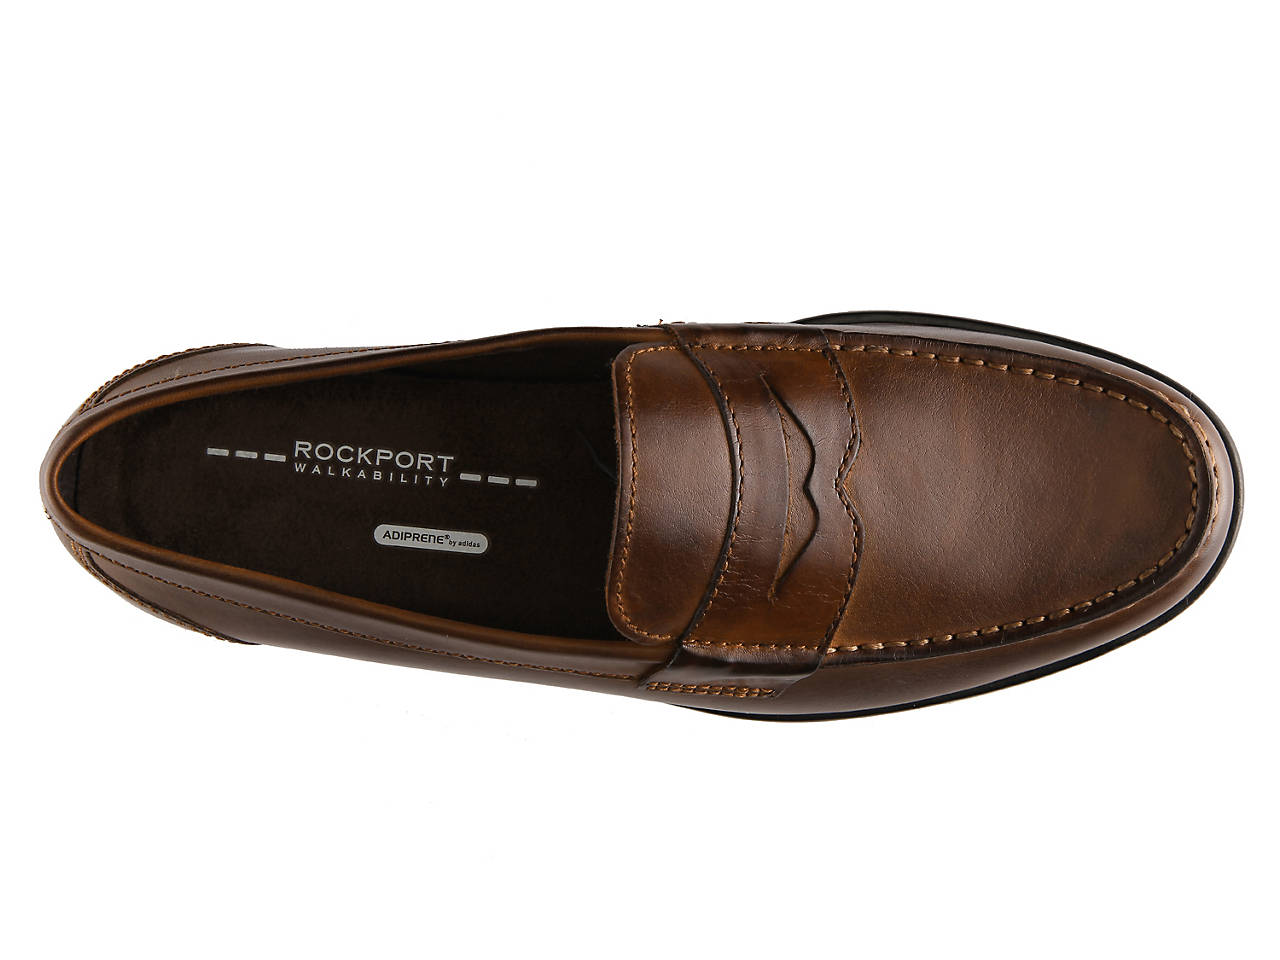 Rockport Classic Penny Loafer Men's Shoes | DSW